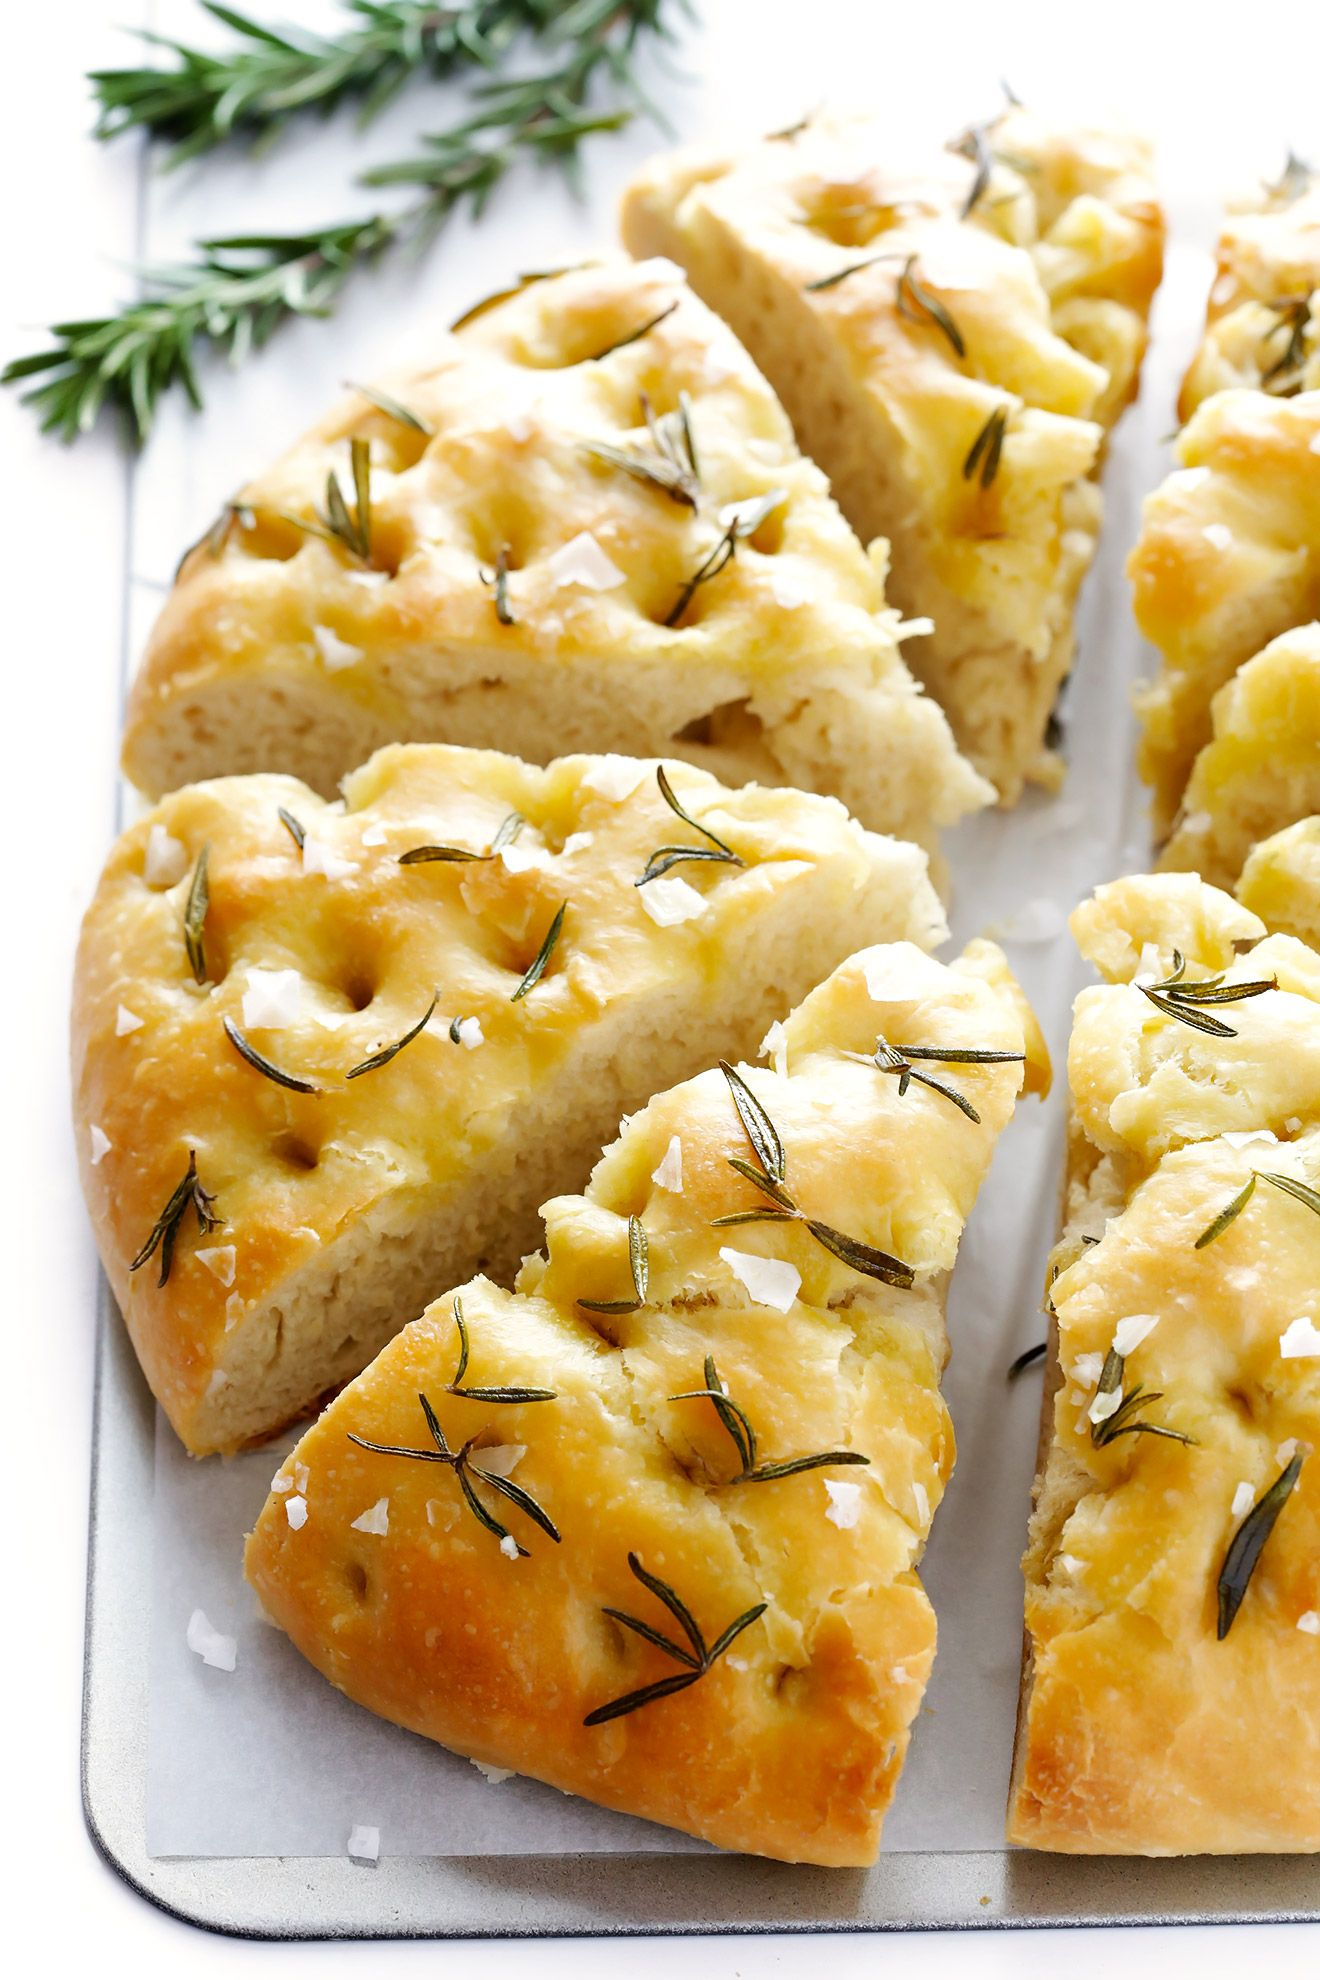 This Delicious Rosemary Focaccia Bread Is Super Easy To Make And Topped With Lots Of Fresh Olive Oil Sea Salt